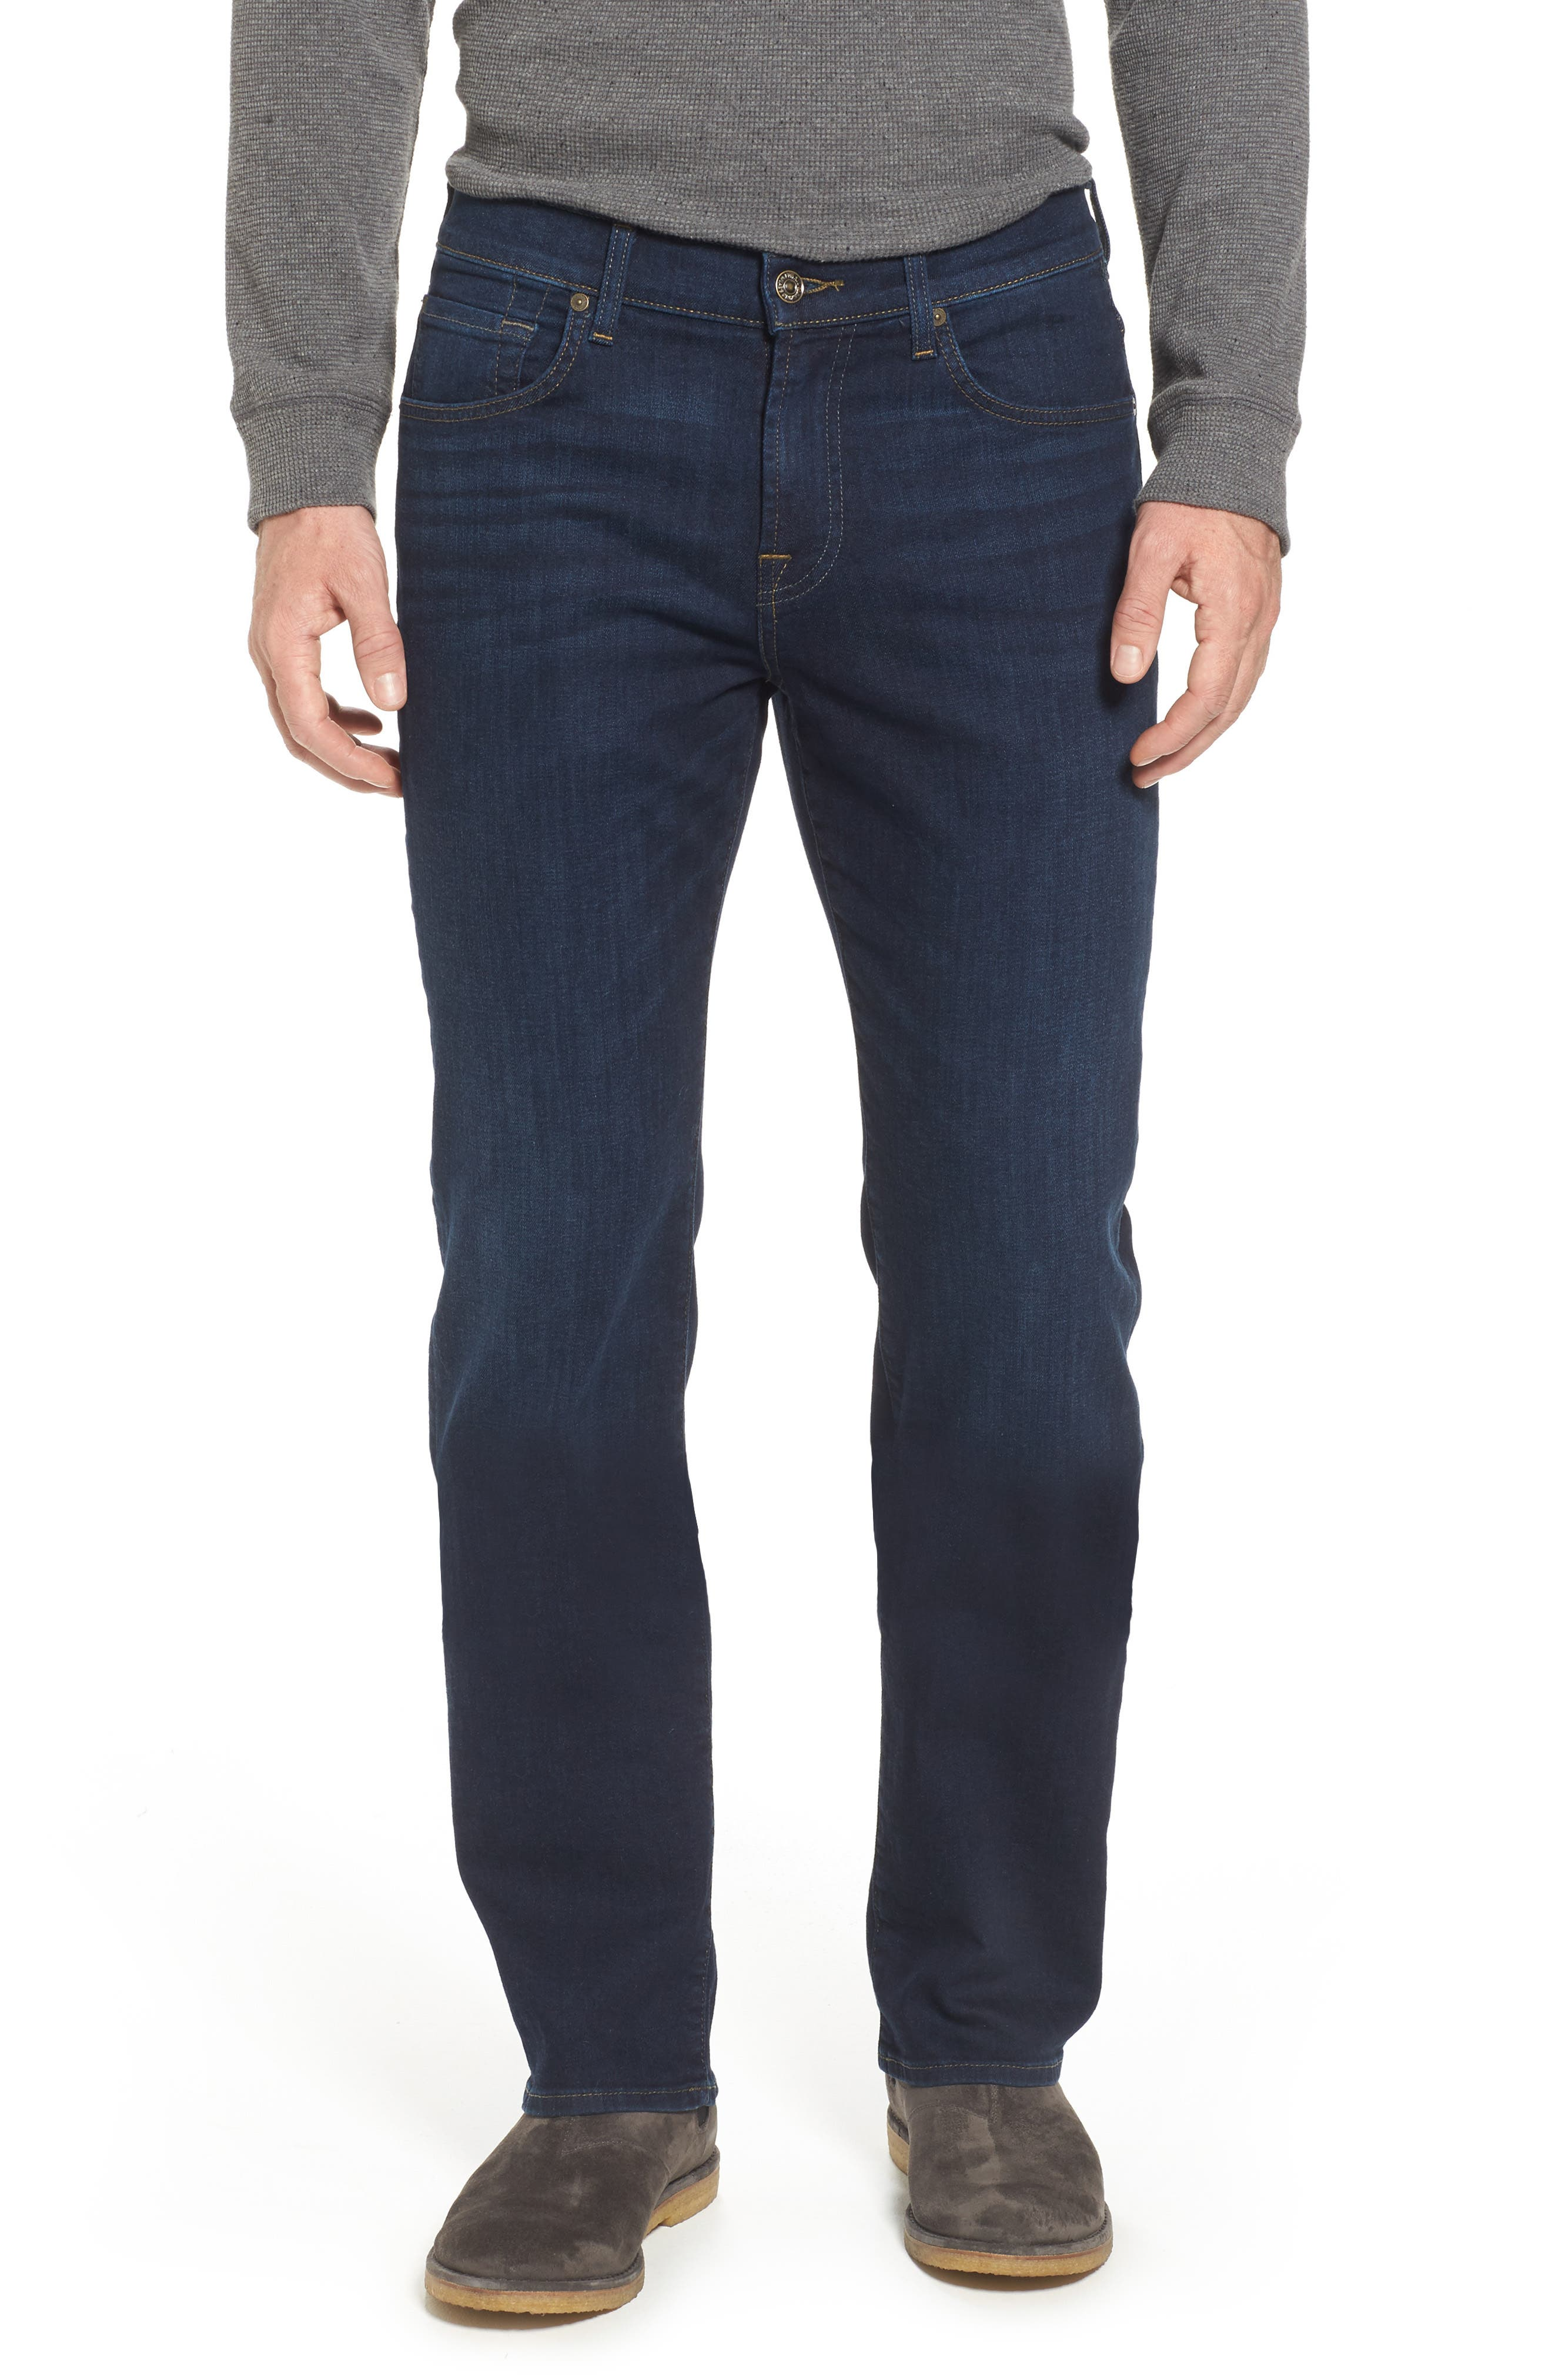 Austyn Relaxed Fit Jeans,                             Main thumbnail 1, color,